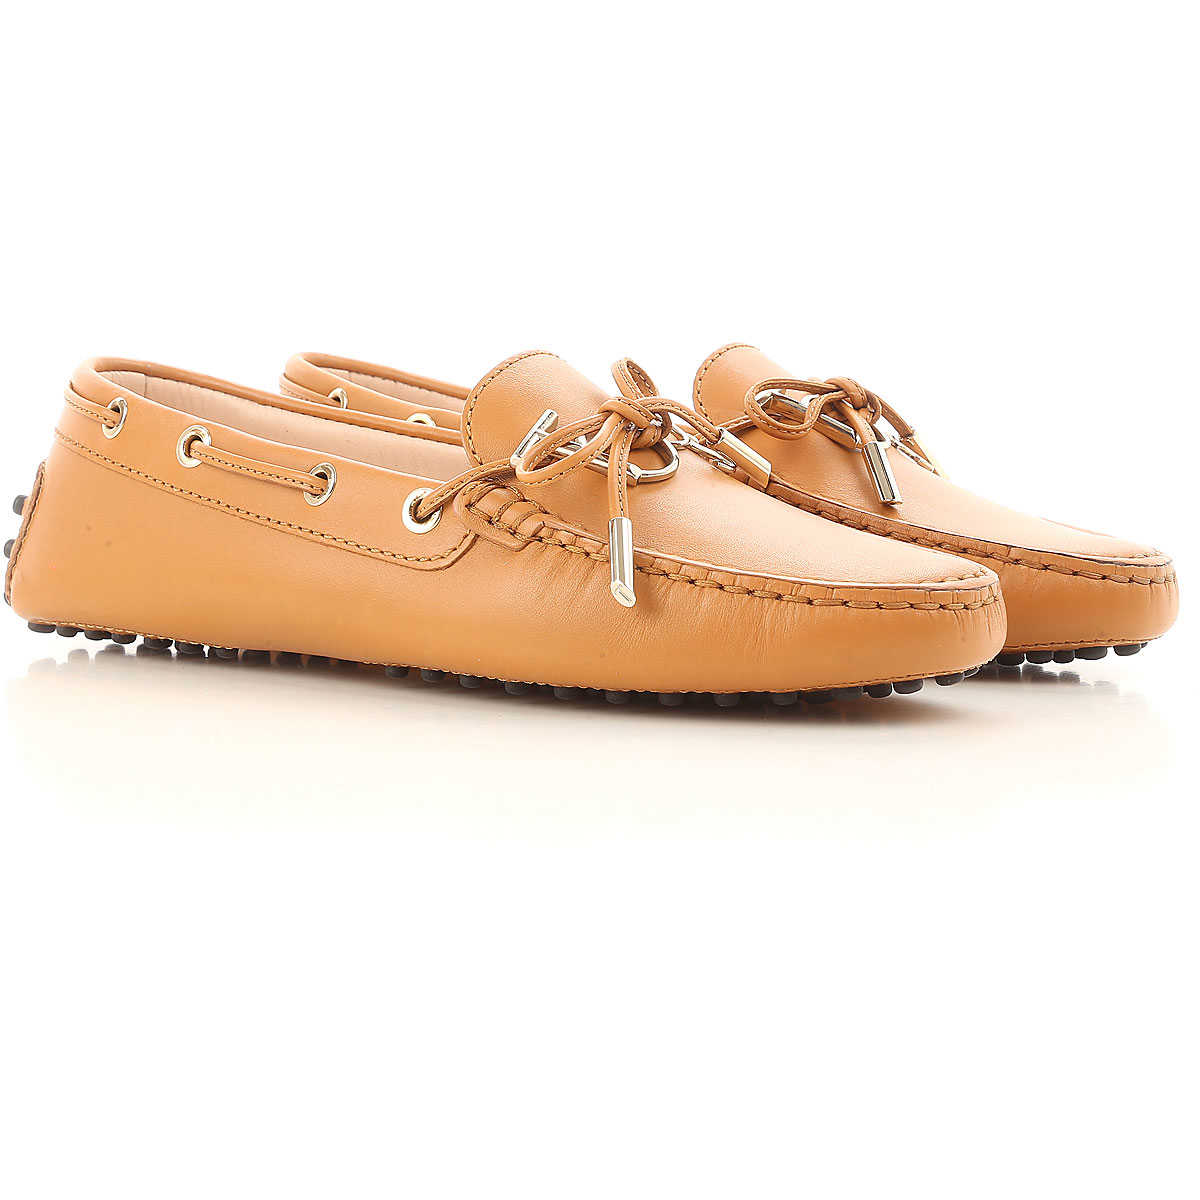 Tods Loafers for Women Light Leather Brown USA - GOOFASH